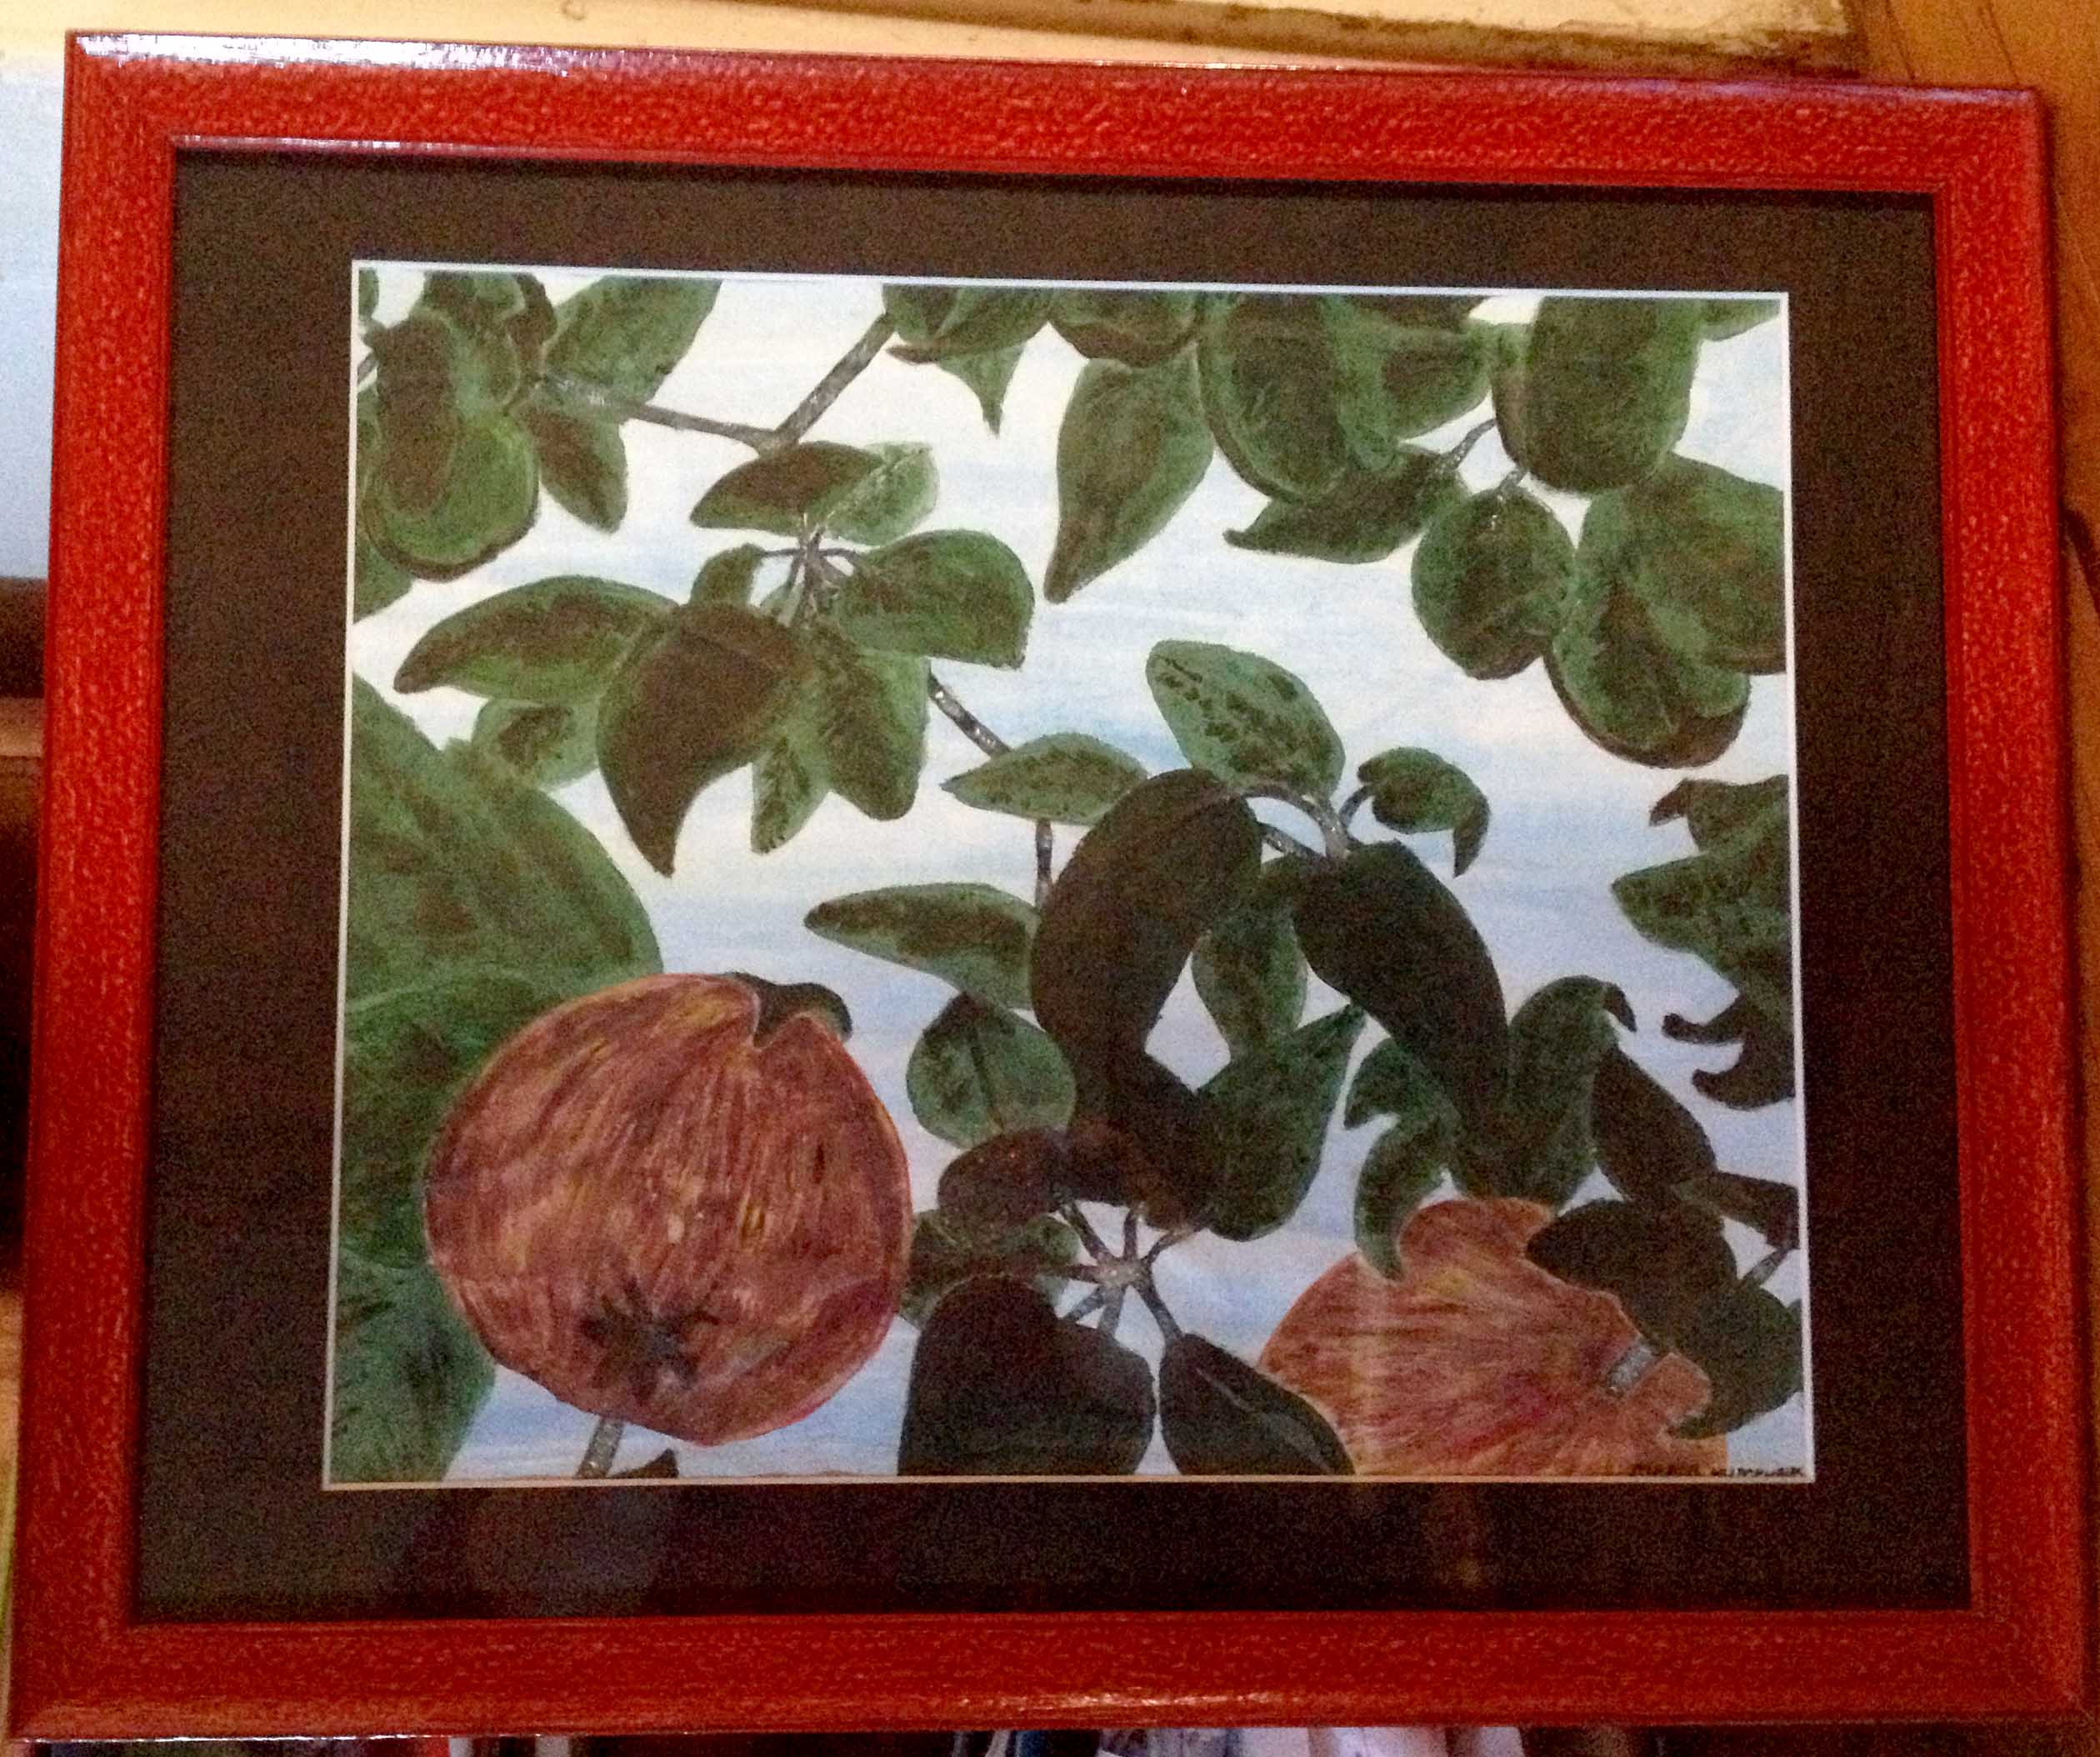 Appletree by Margo Humphries. Size 41×29. $40 FRAMED